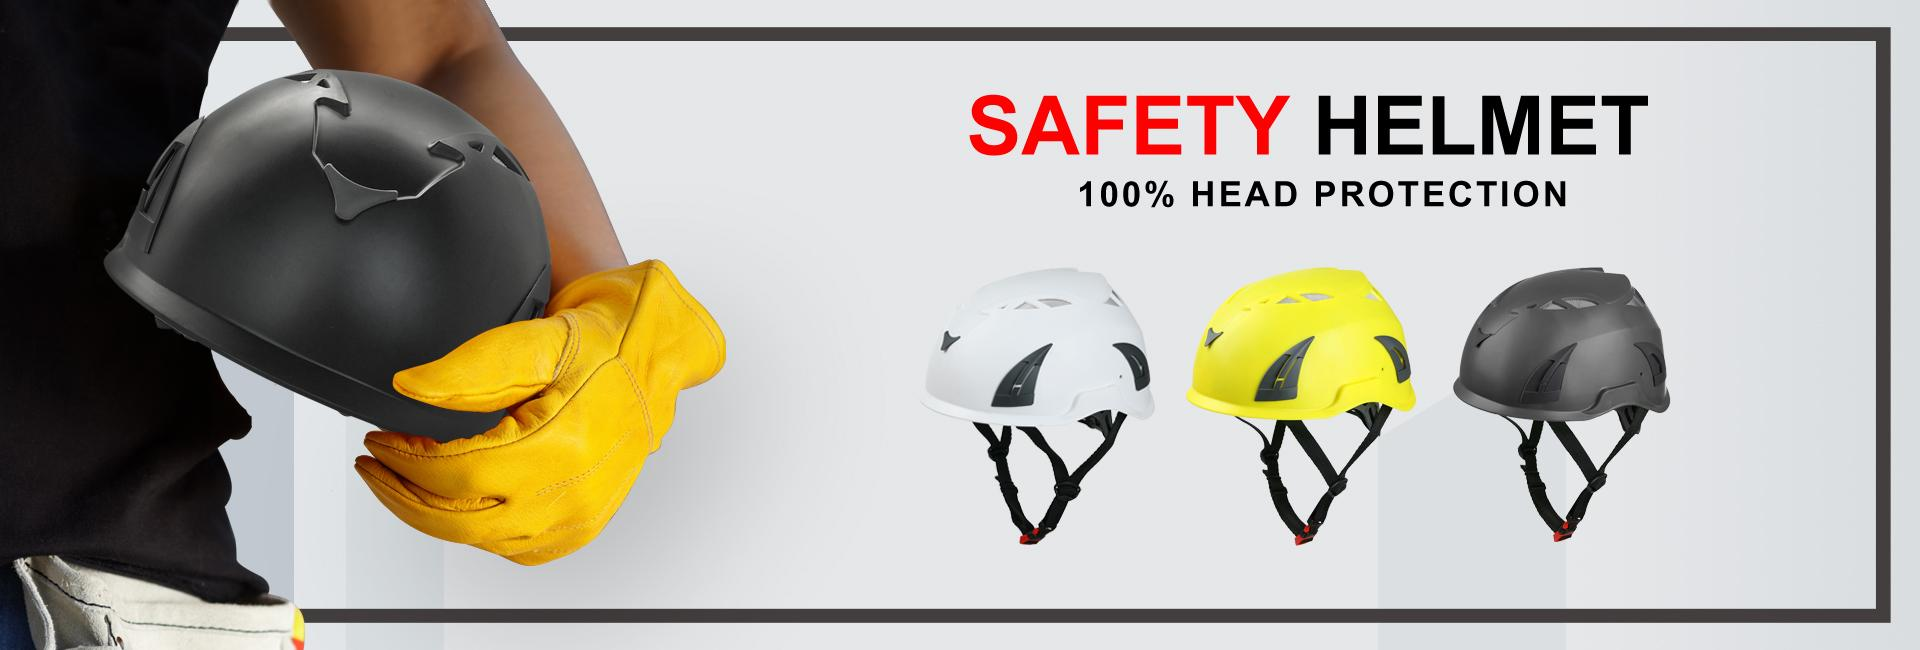 Best Selling Rescue Helmet With Anti-fog/scratch Visor 6